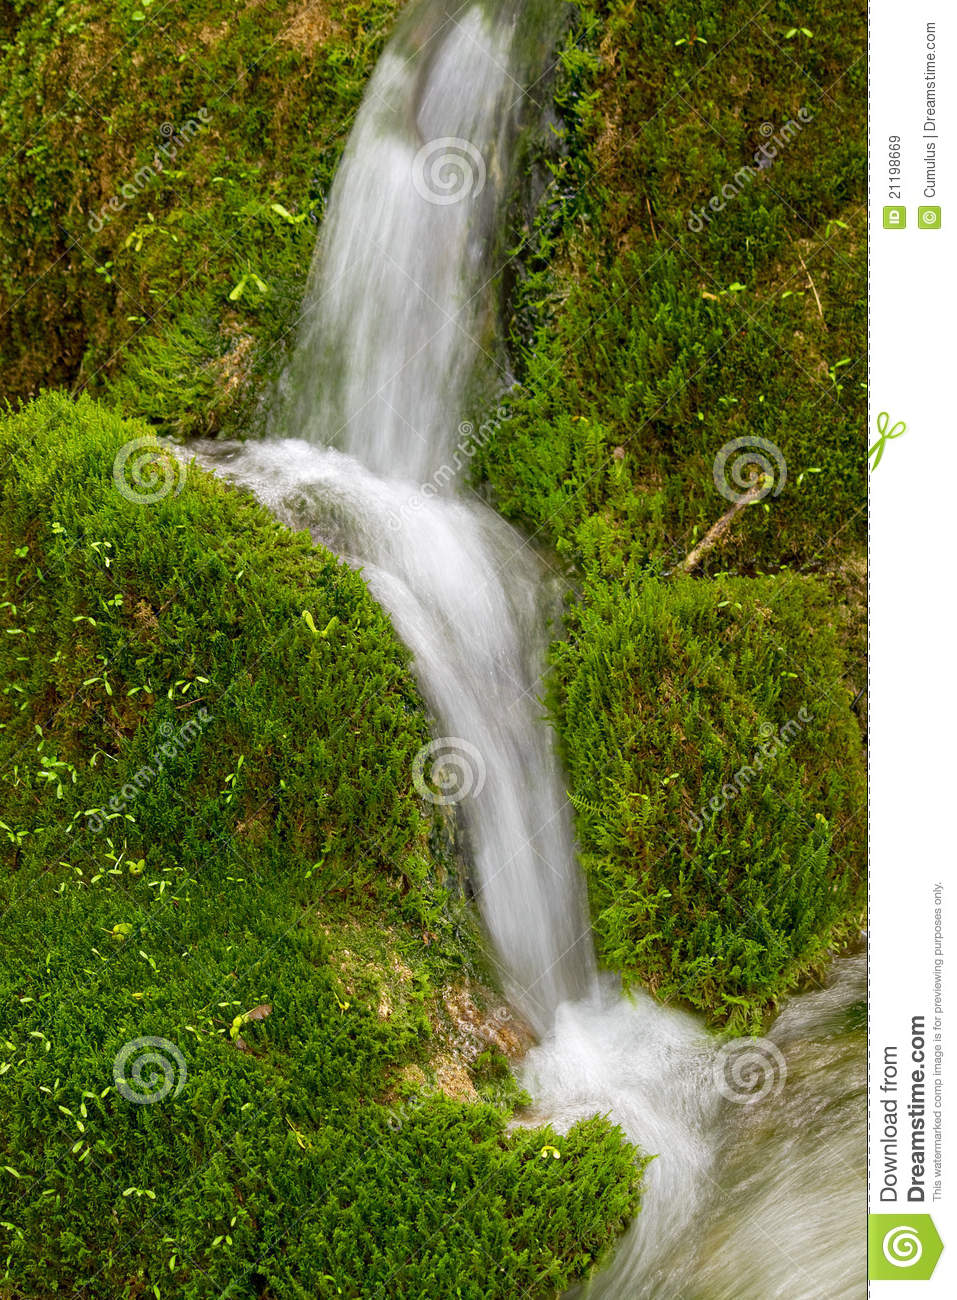 Water streaming over green moss.